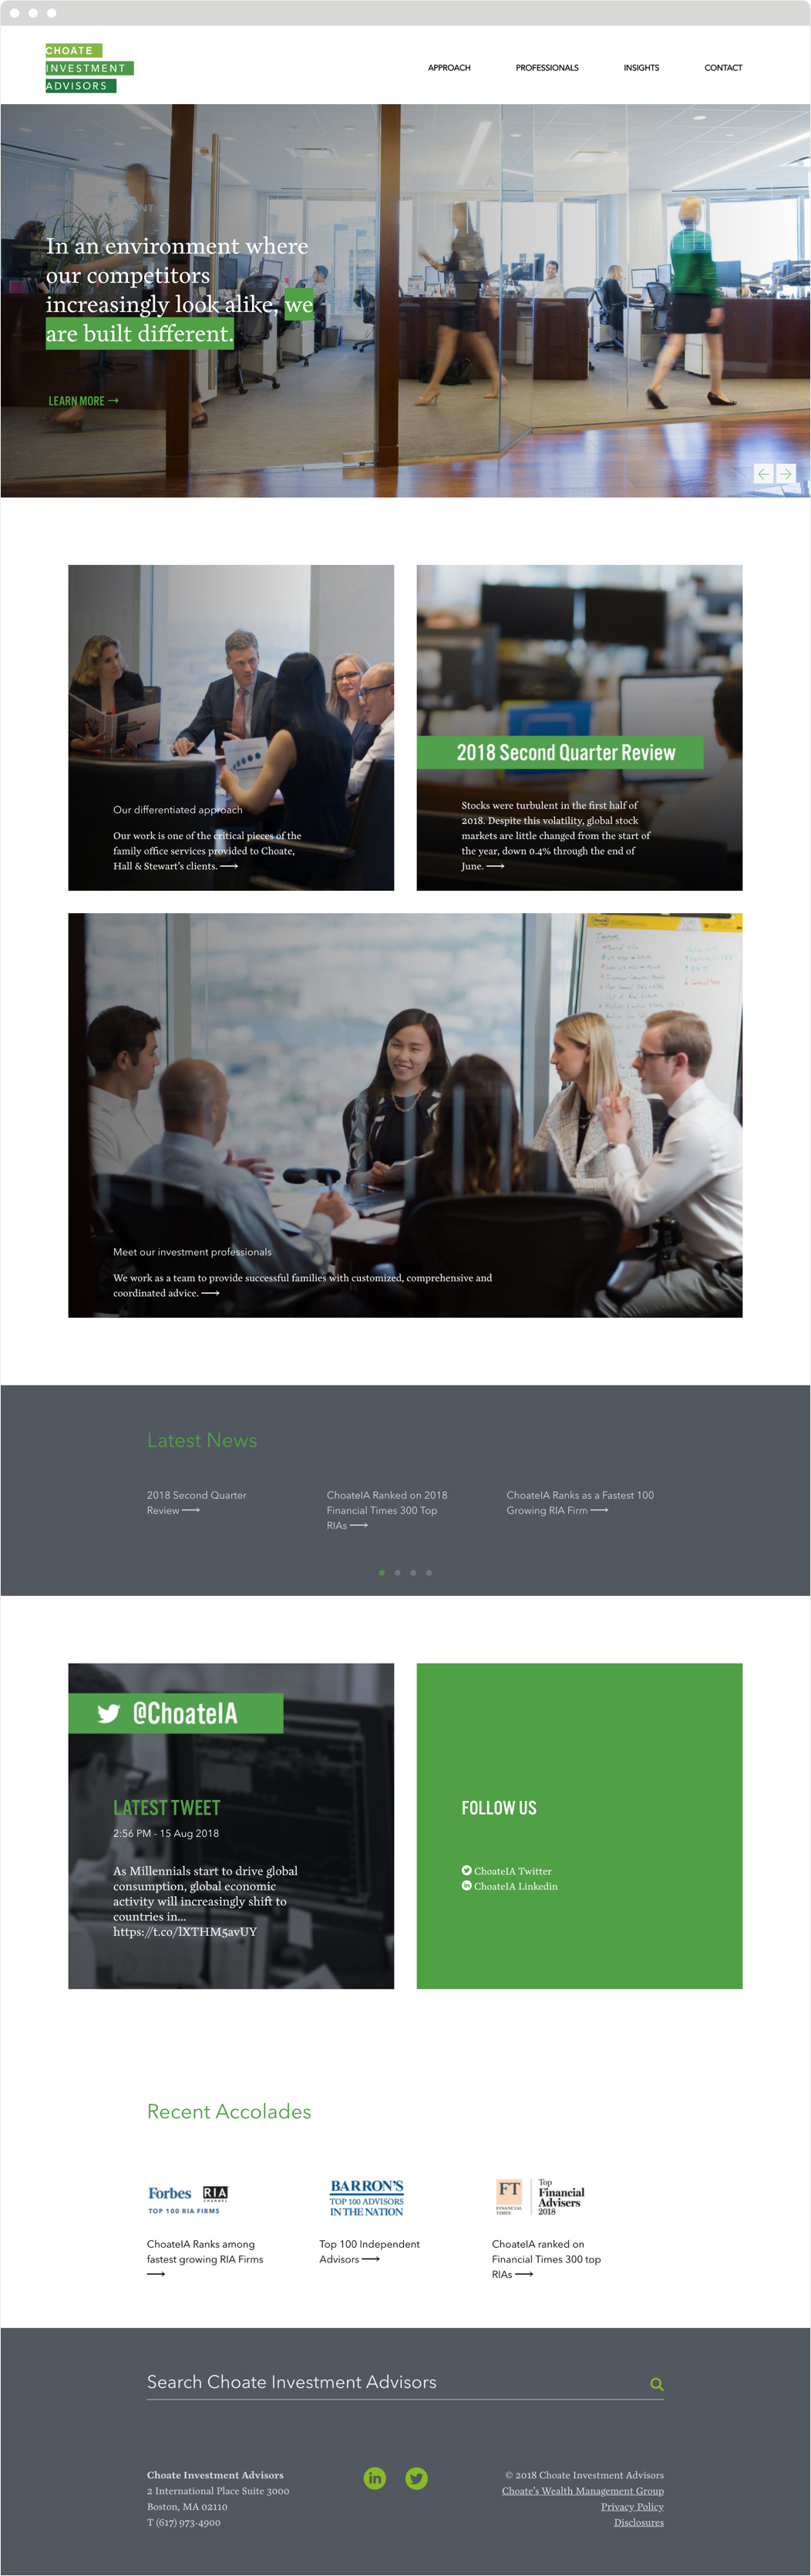 """The Choate Investment Advisors web home page, headed by their logo and brand tagline """"We are built different."""""""